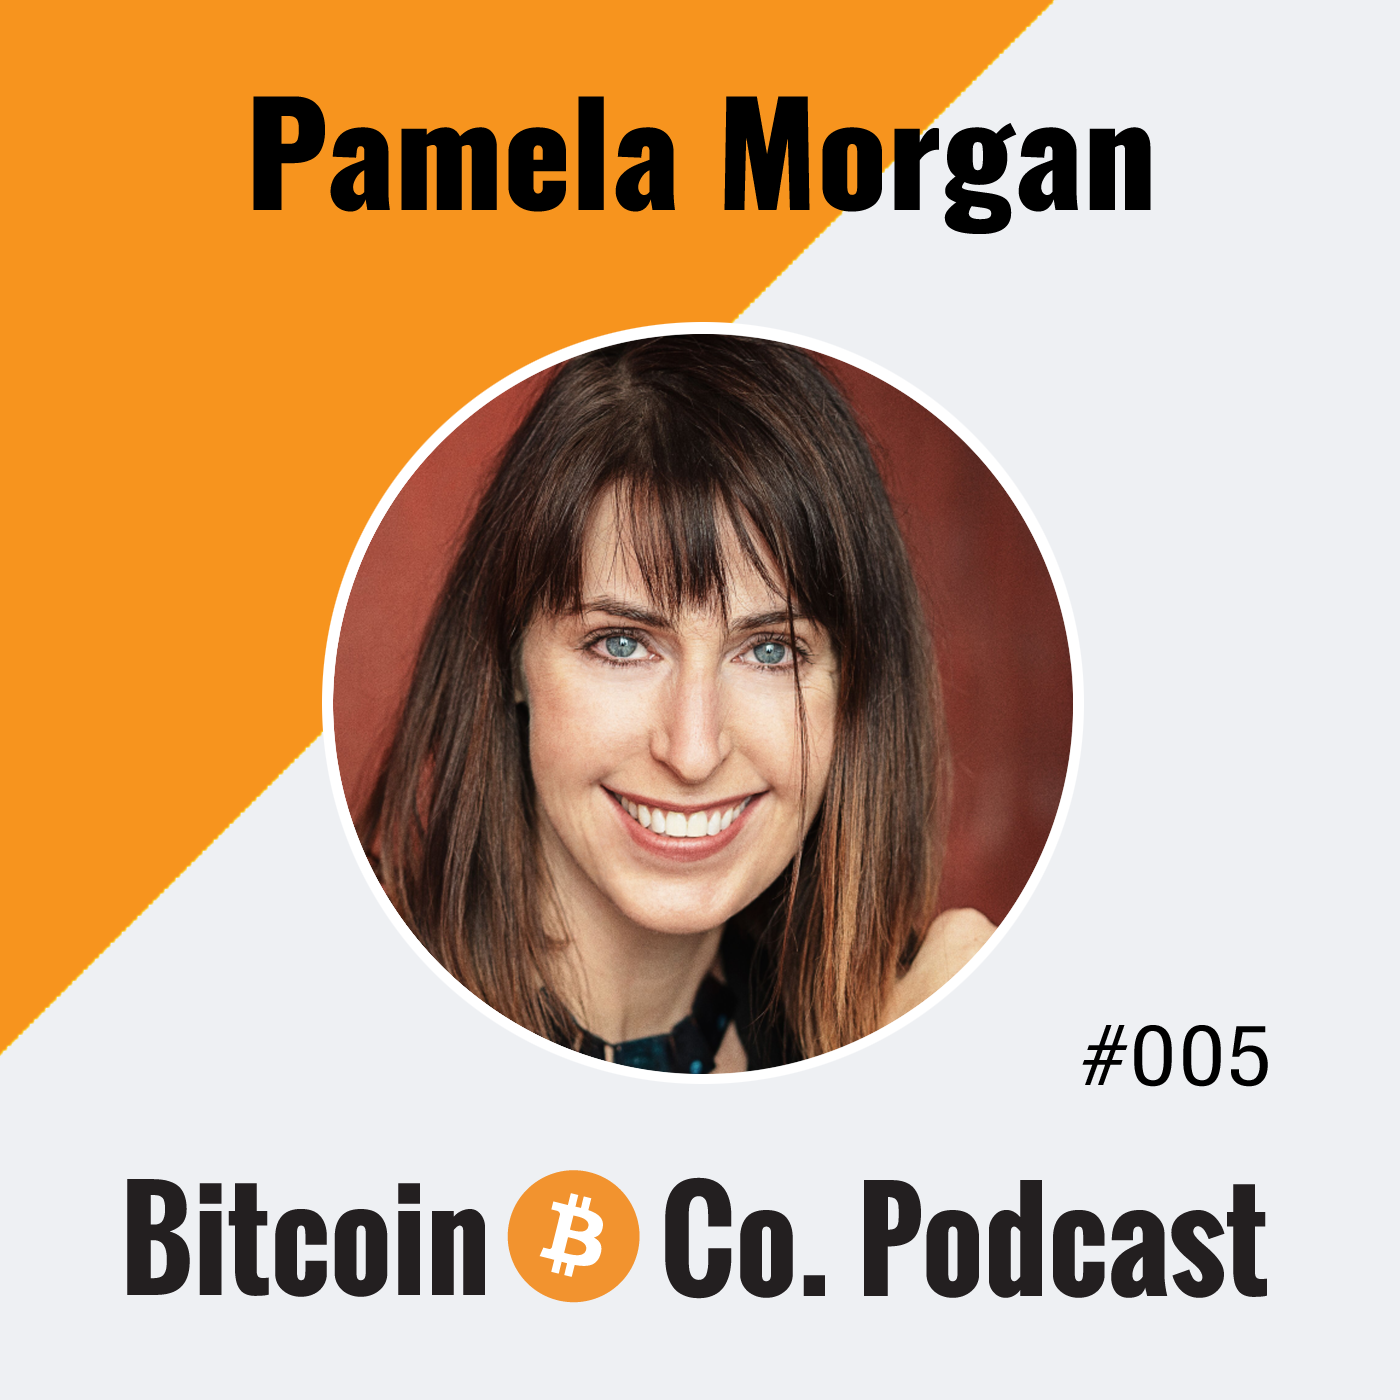 Podcast with Pamela Morgan